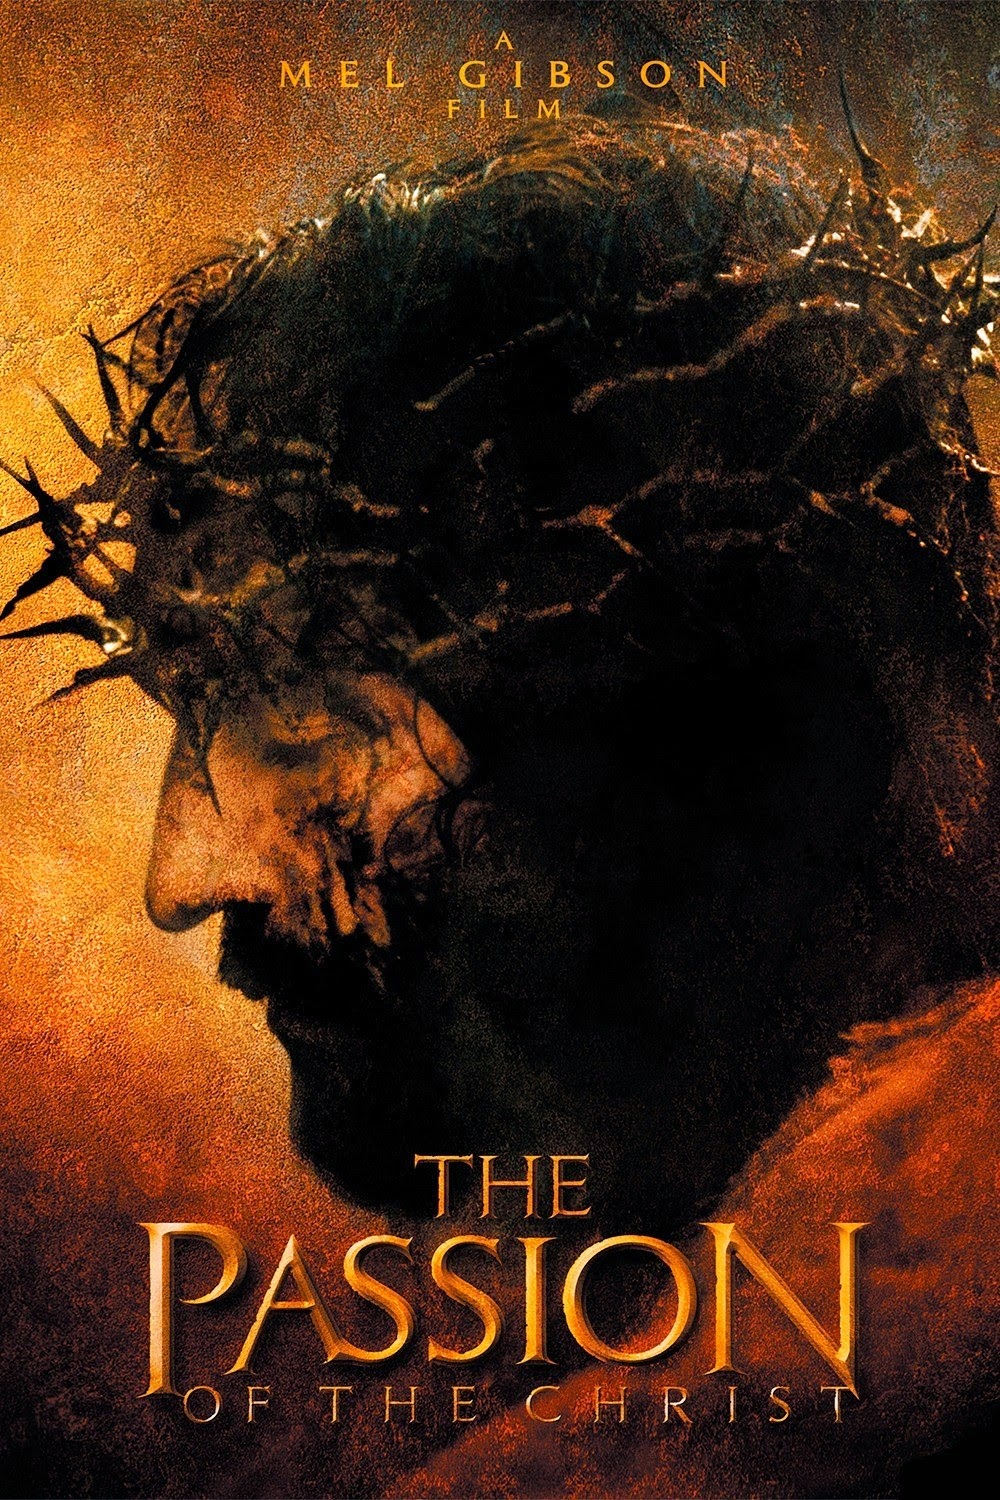 Passion Of The Christ 2004 English Christian Movie Download Christians Campus Music Albums Movies Bible Stories Sermons